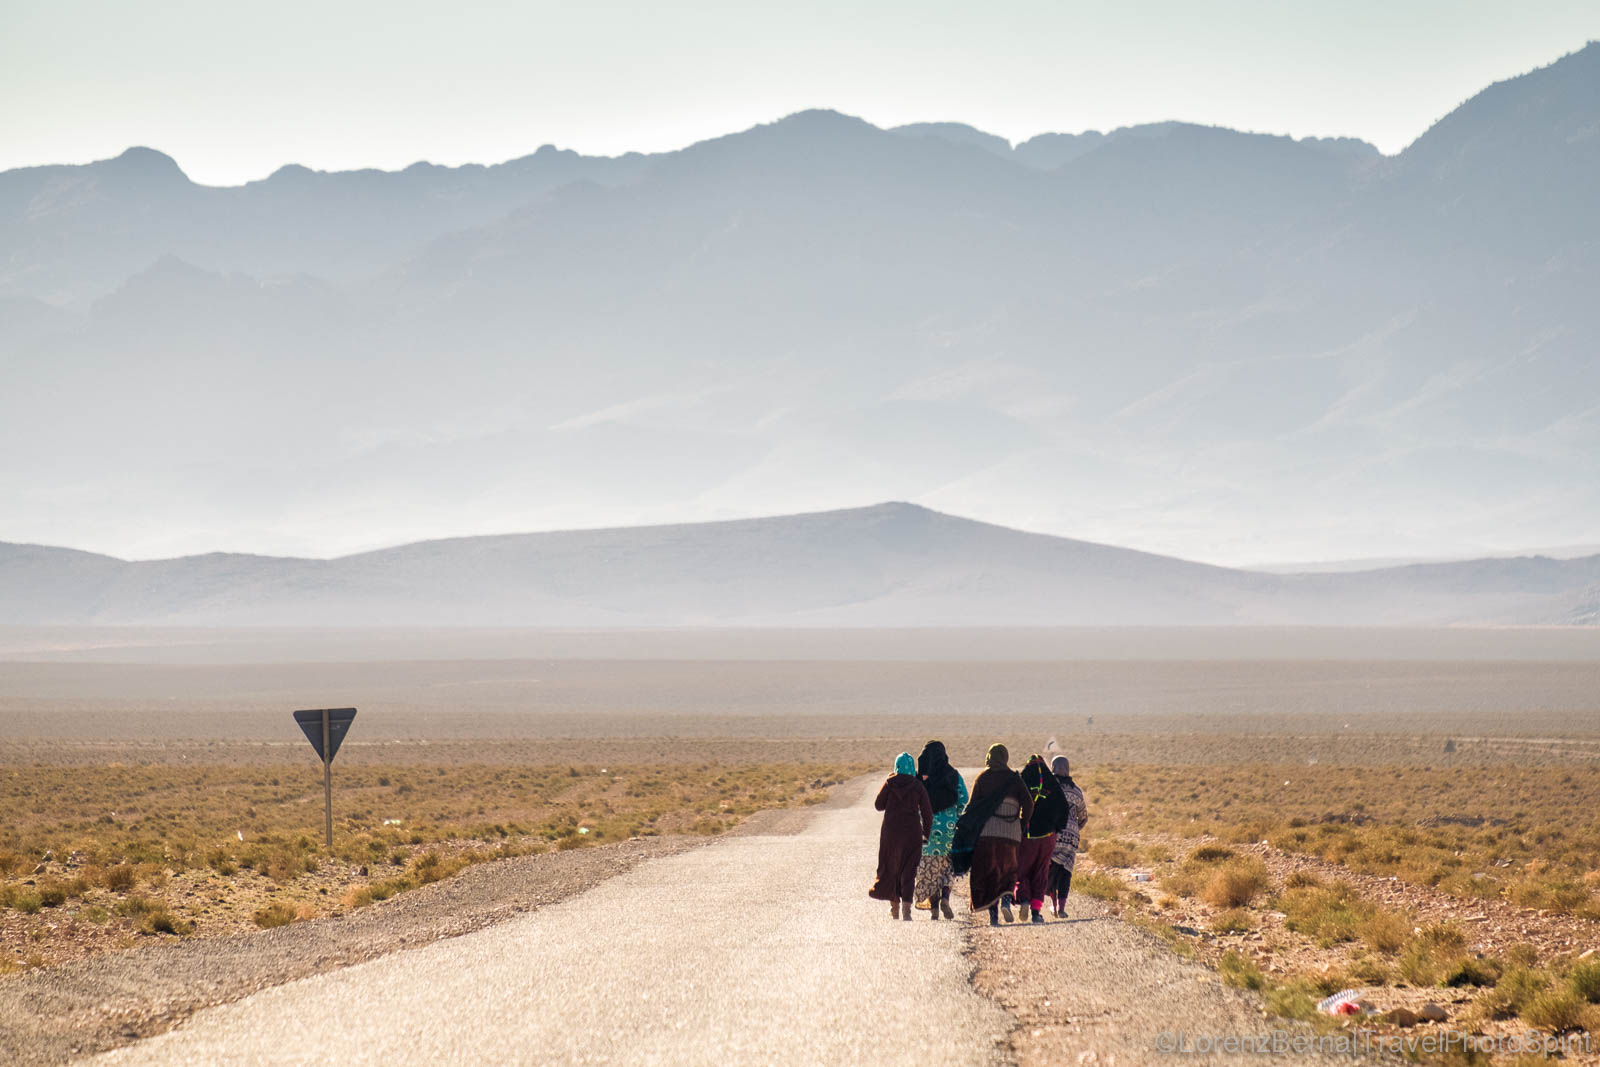 Group of women walking in the mountain valleys of the Anti-Atlas of Morocco